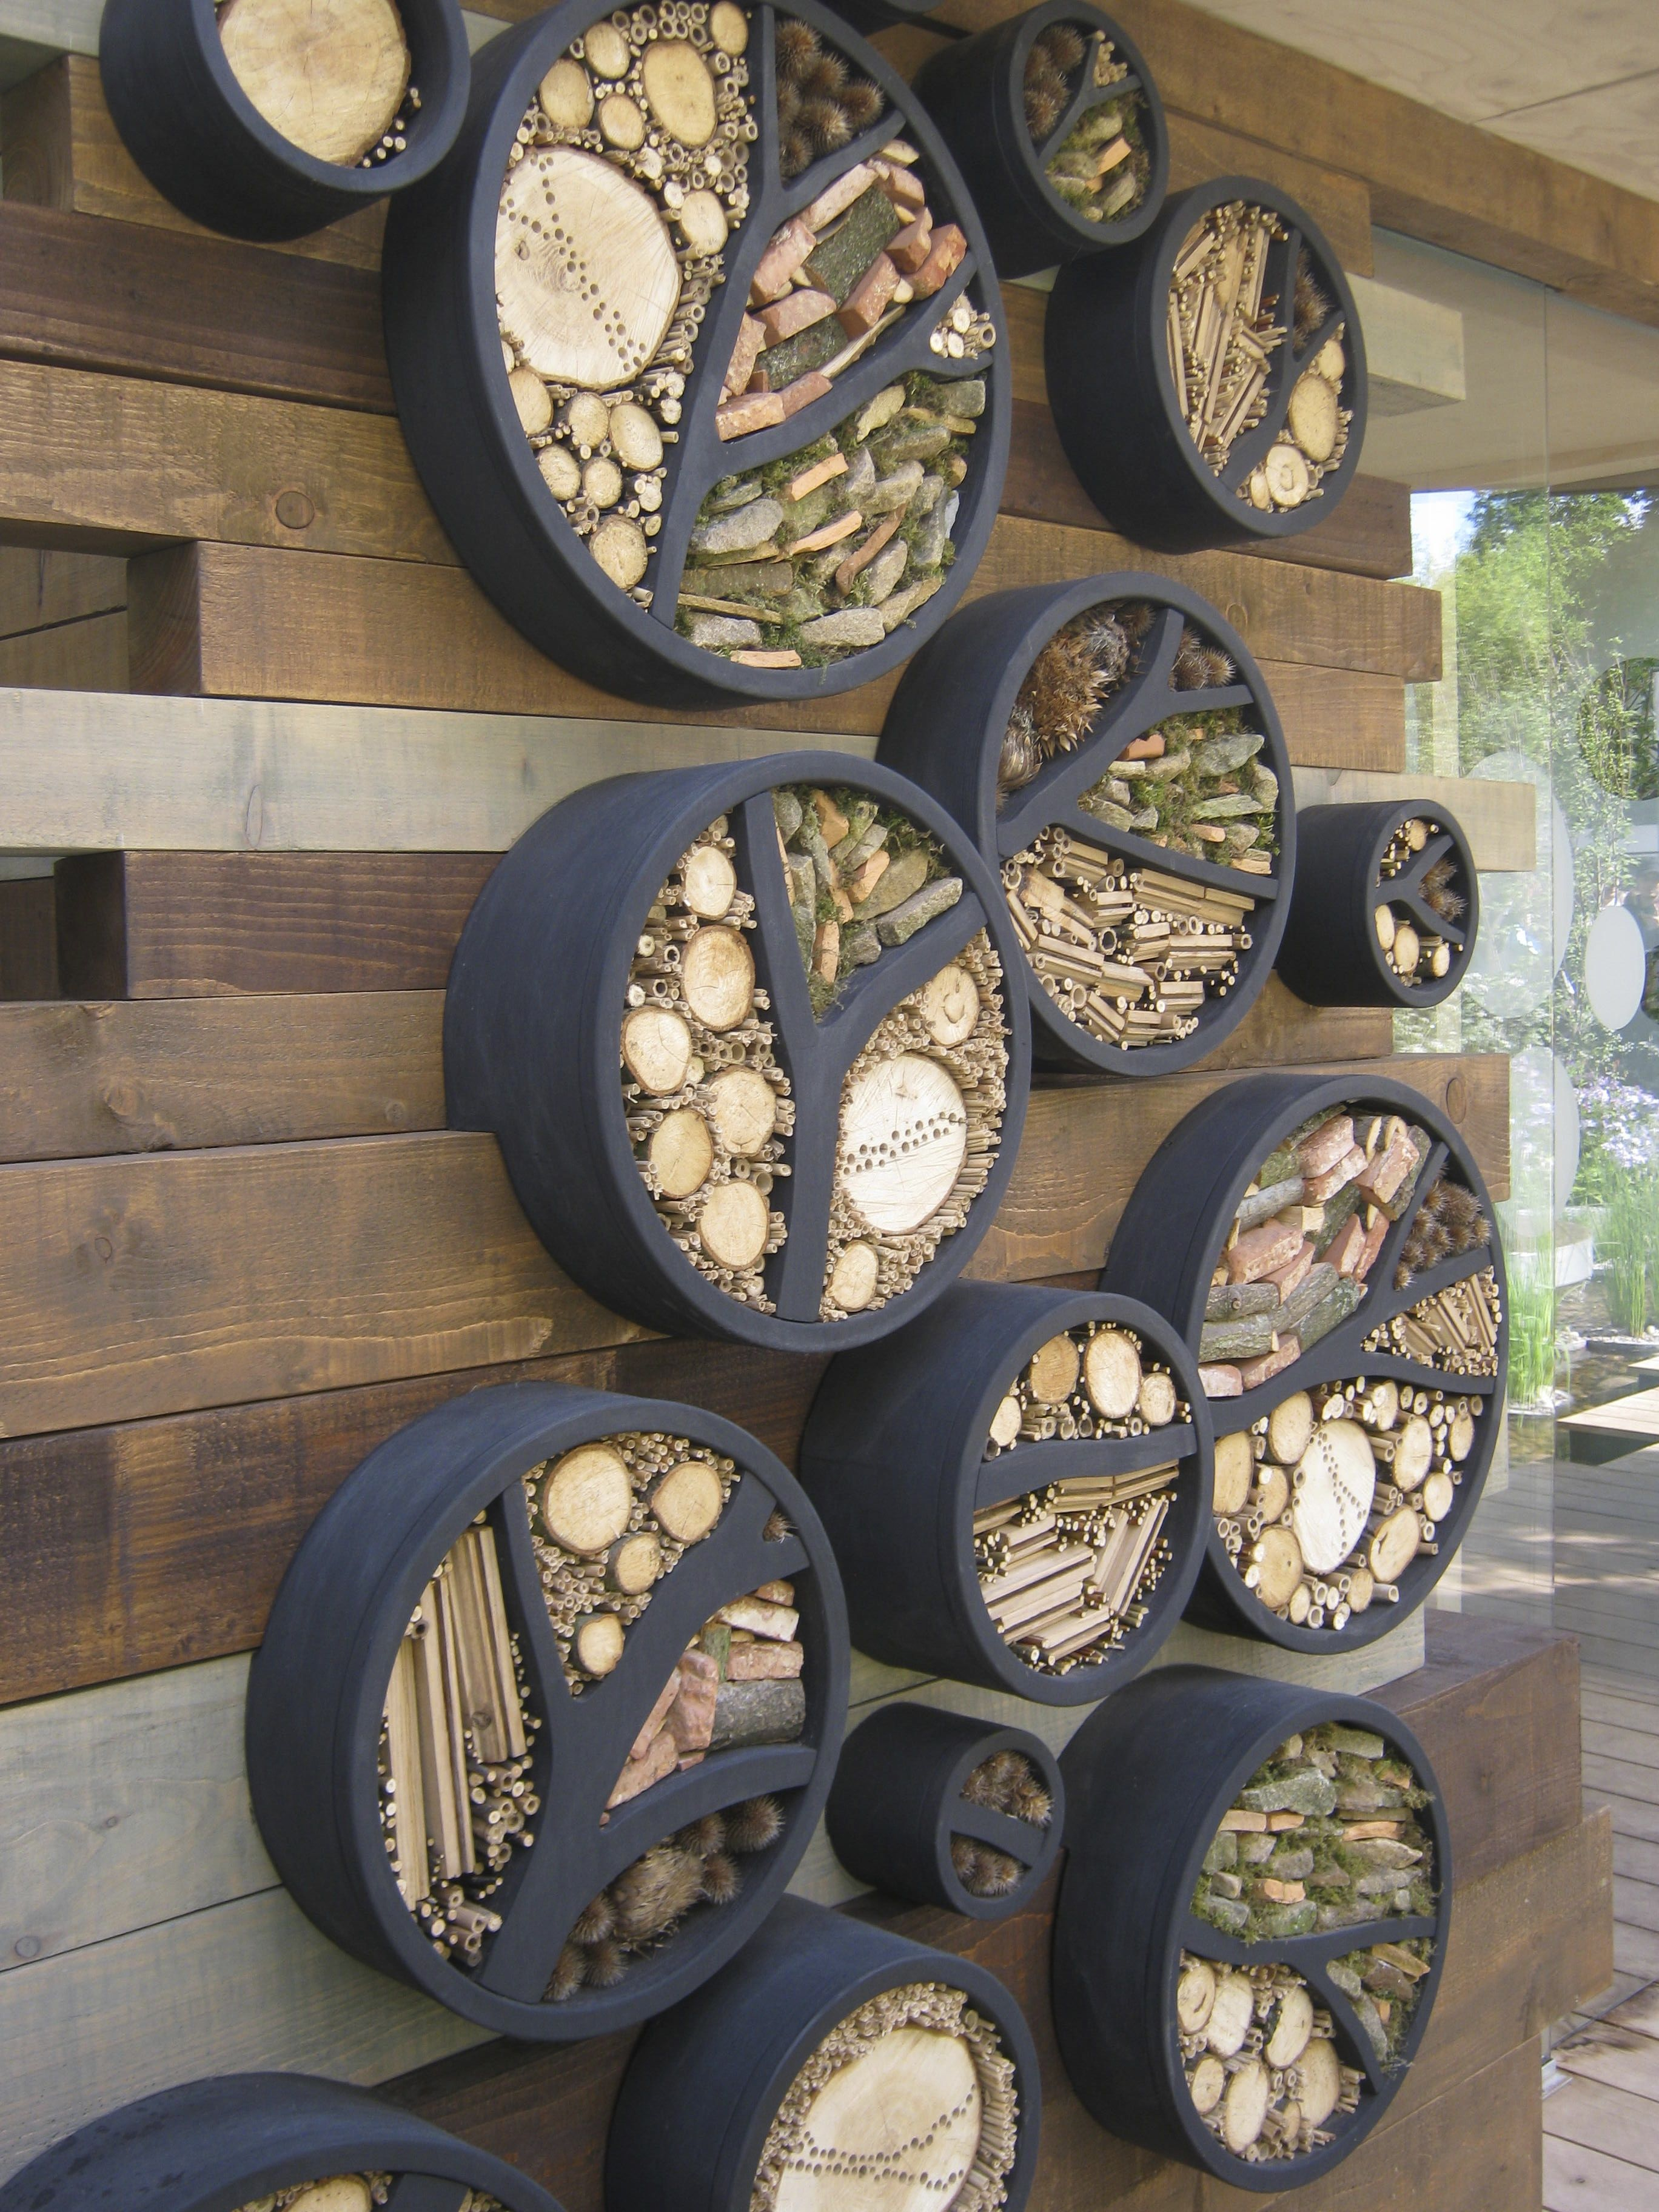 Insects hotel - Lovely wall detail - RBC Blue Water Roof Garden by Professor Nigel Dunnett & 11 Inspirations for Insect Hotels | BEES | Pinterest | Insect hotel ...